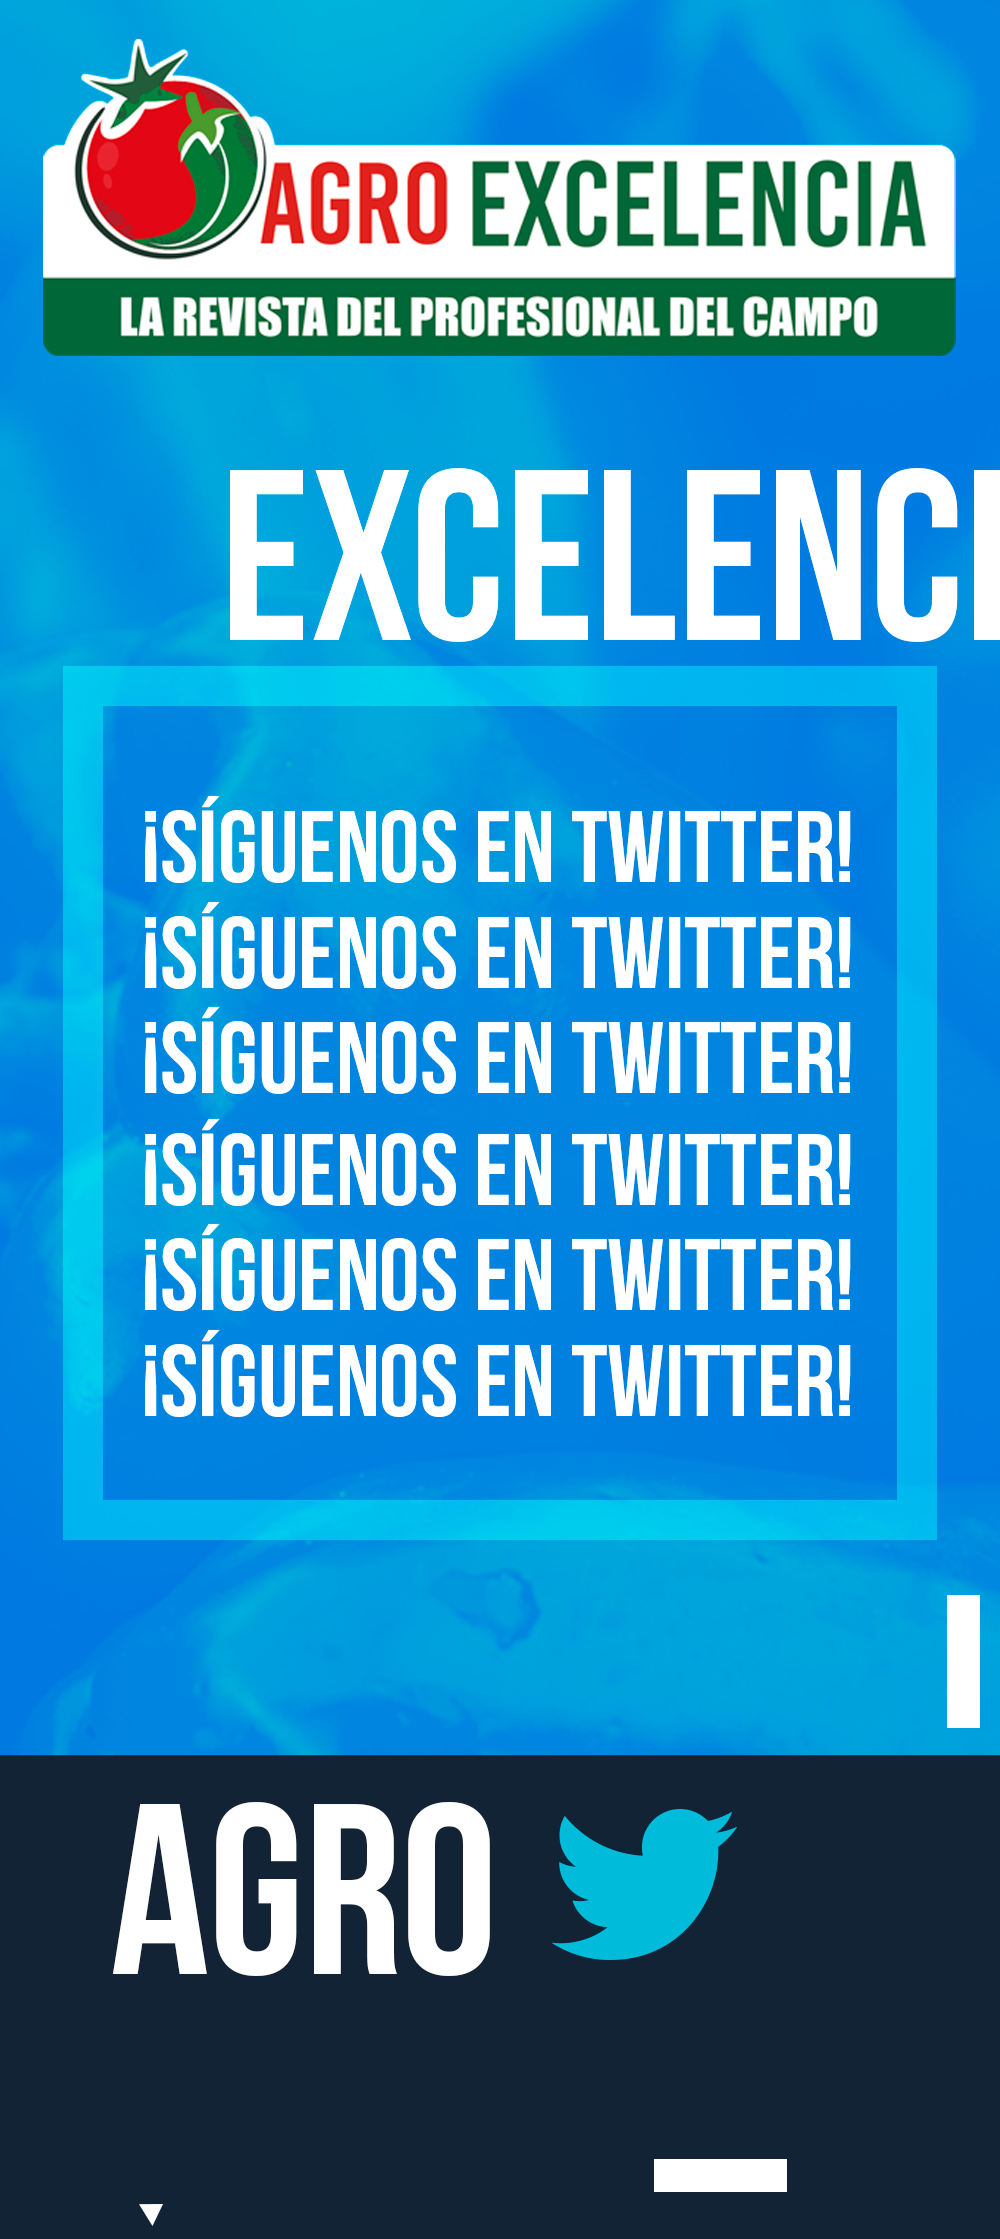 https://agroexcelencia.com/wp-content/uploads/2020/04/POST-16.png